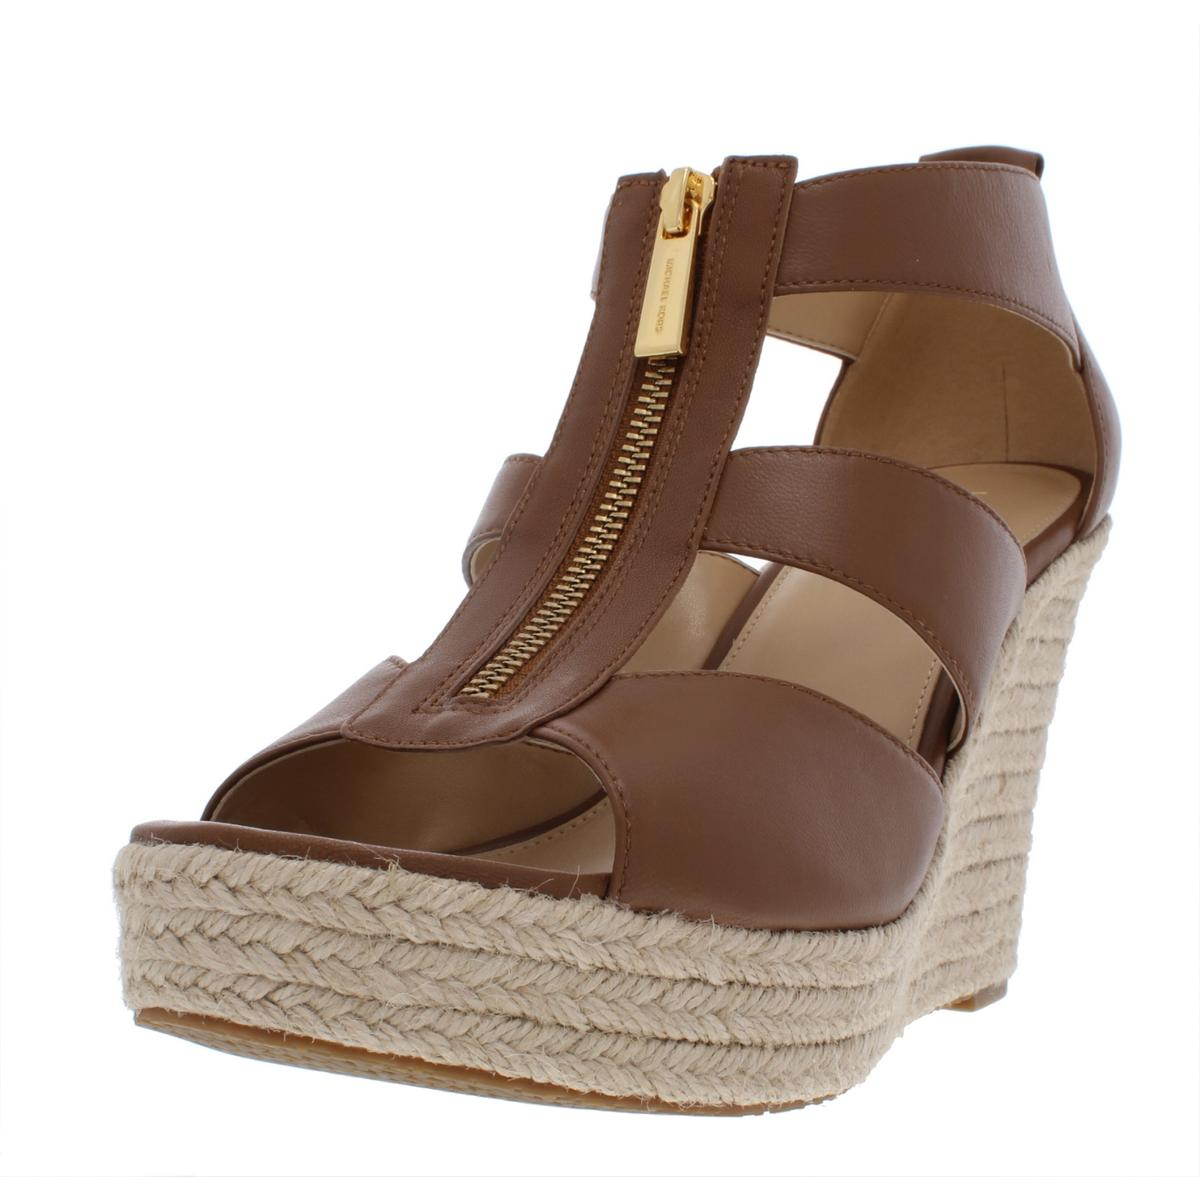 9a00f64f4e1 Details about MICHAEL Michael Kors Womens Damita Leather Wedge Sandals Shoes  BHFO 8872